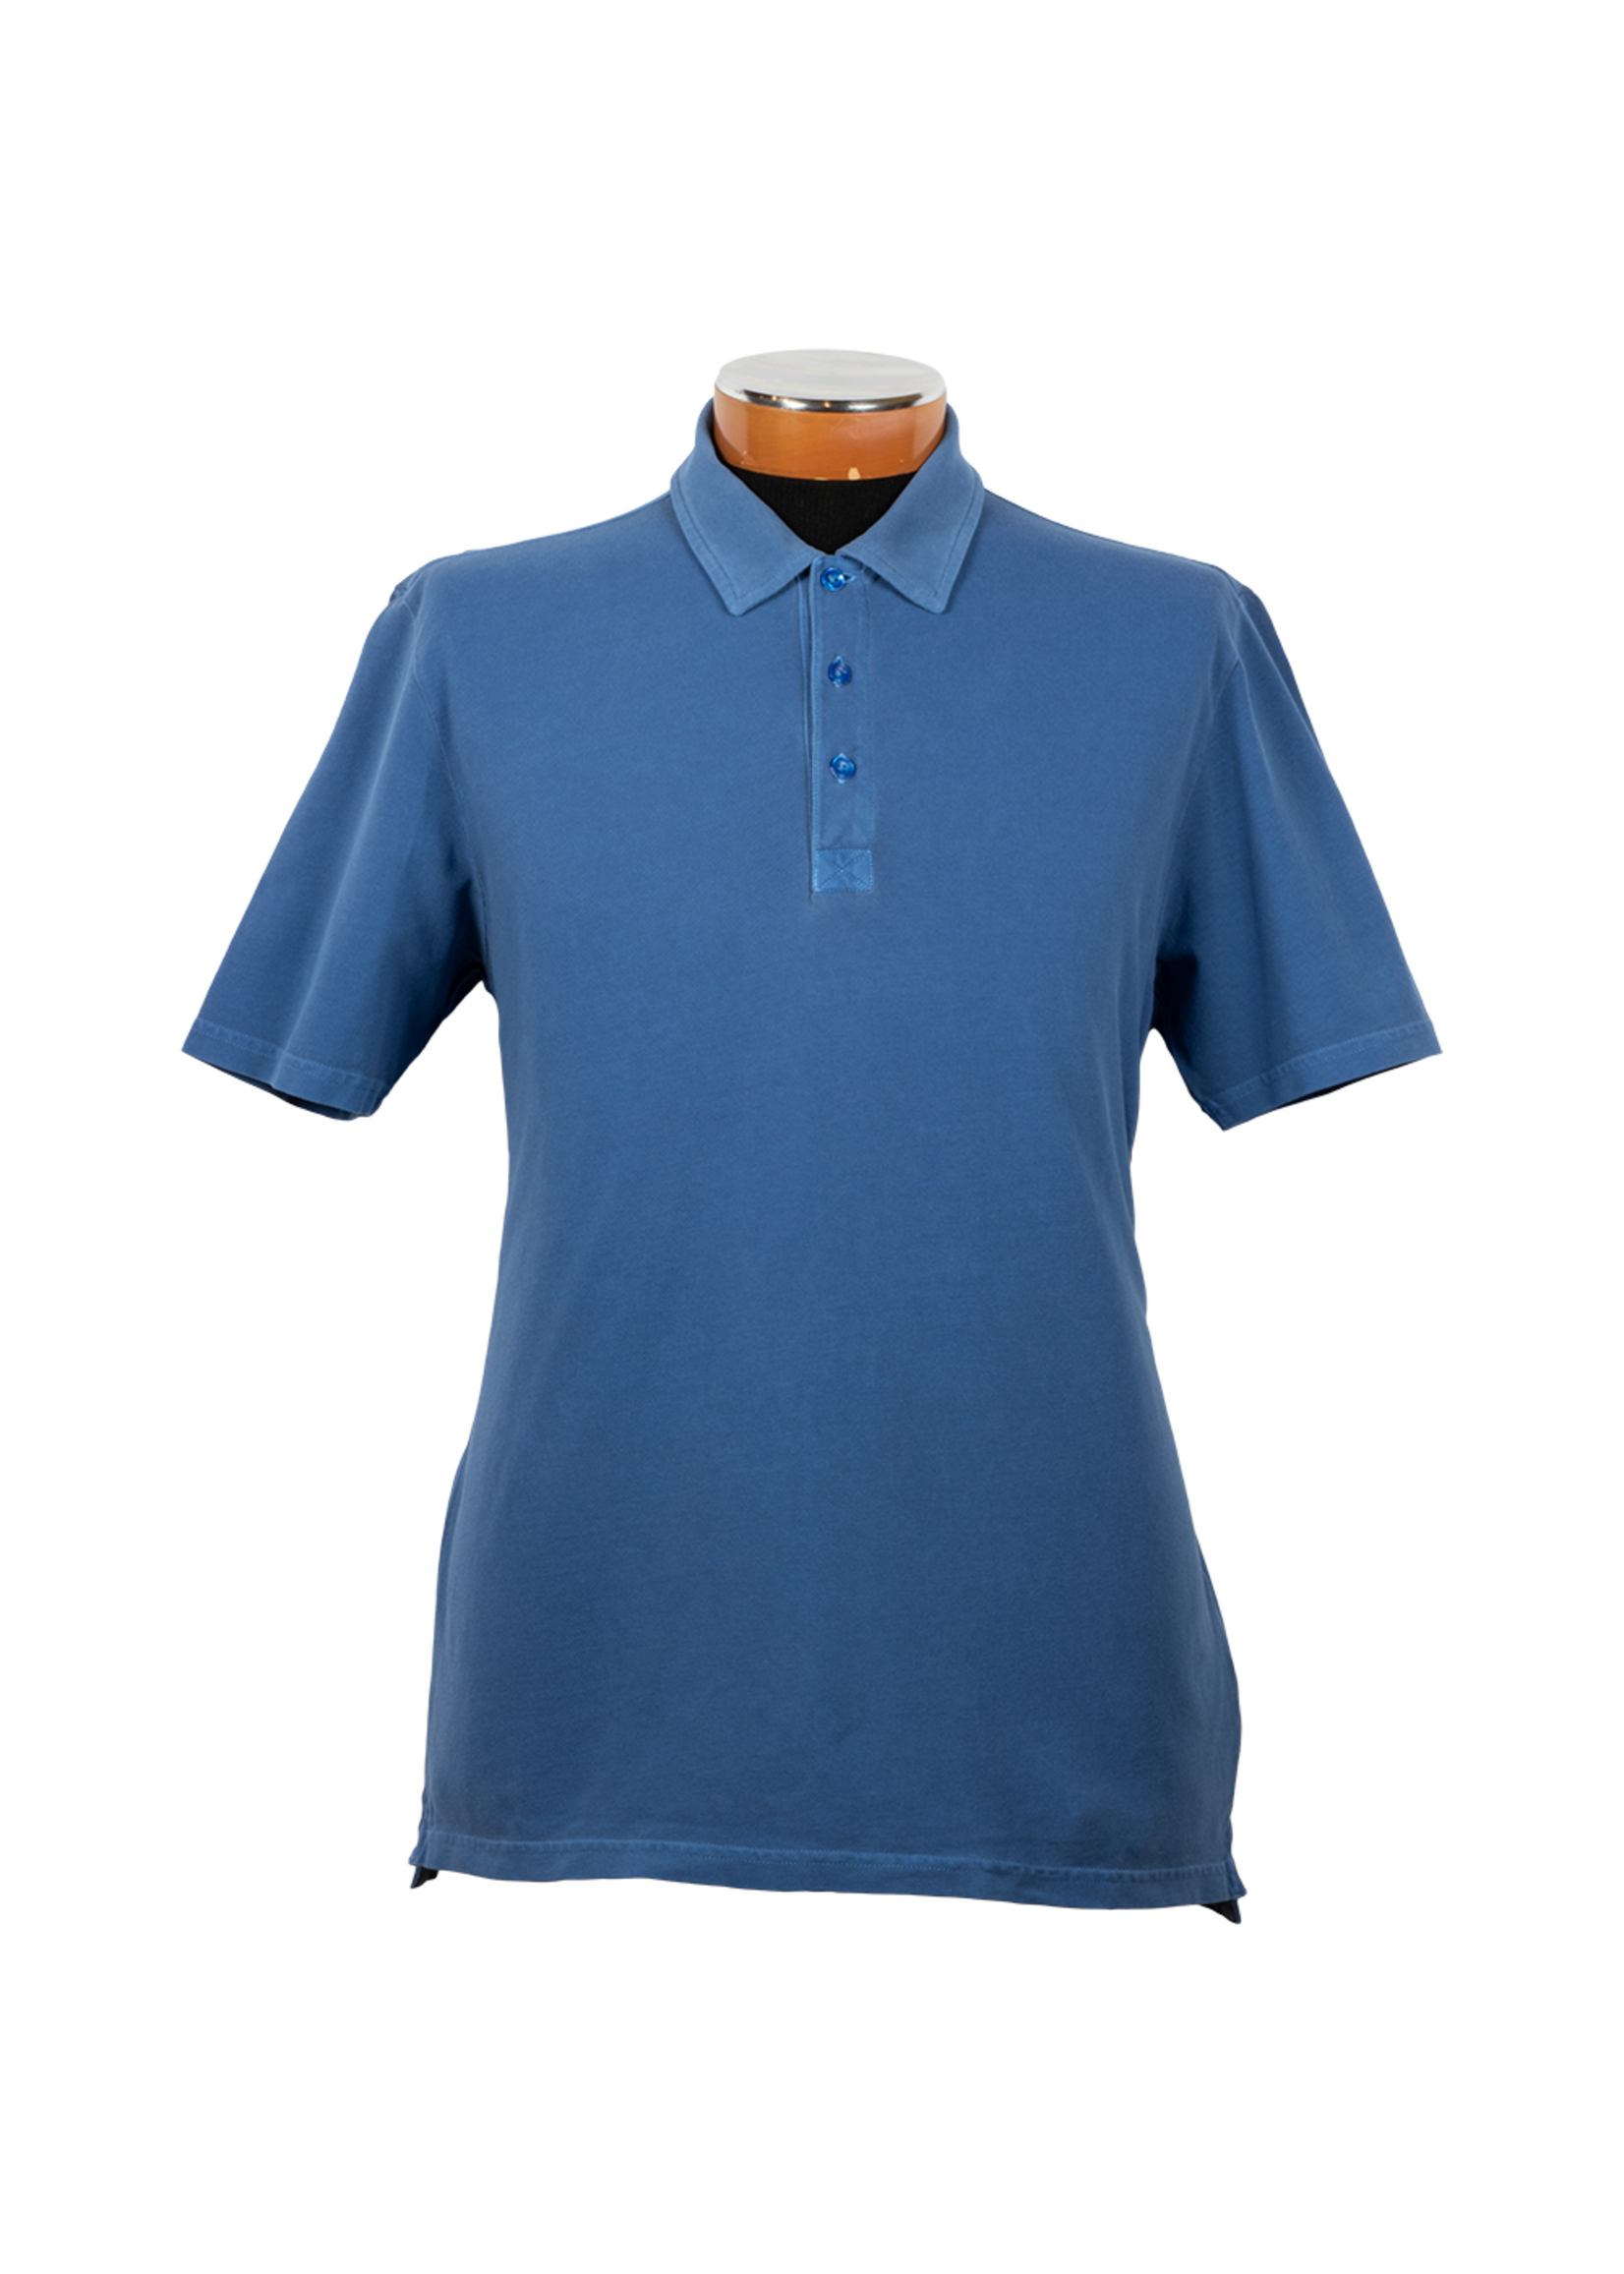 Alan Paine Alan Paine Weymouth Cotton Pique Polo by Alan Paine